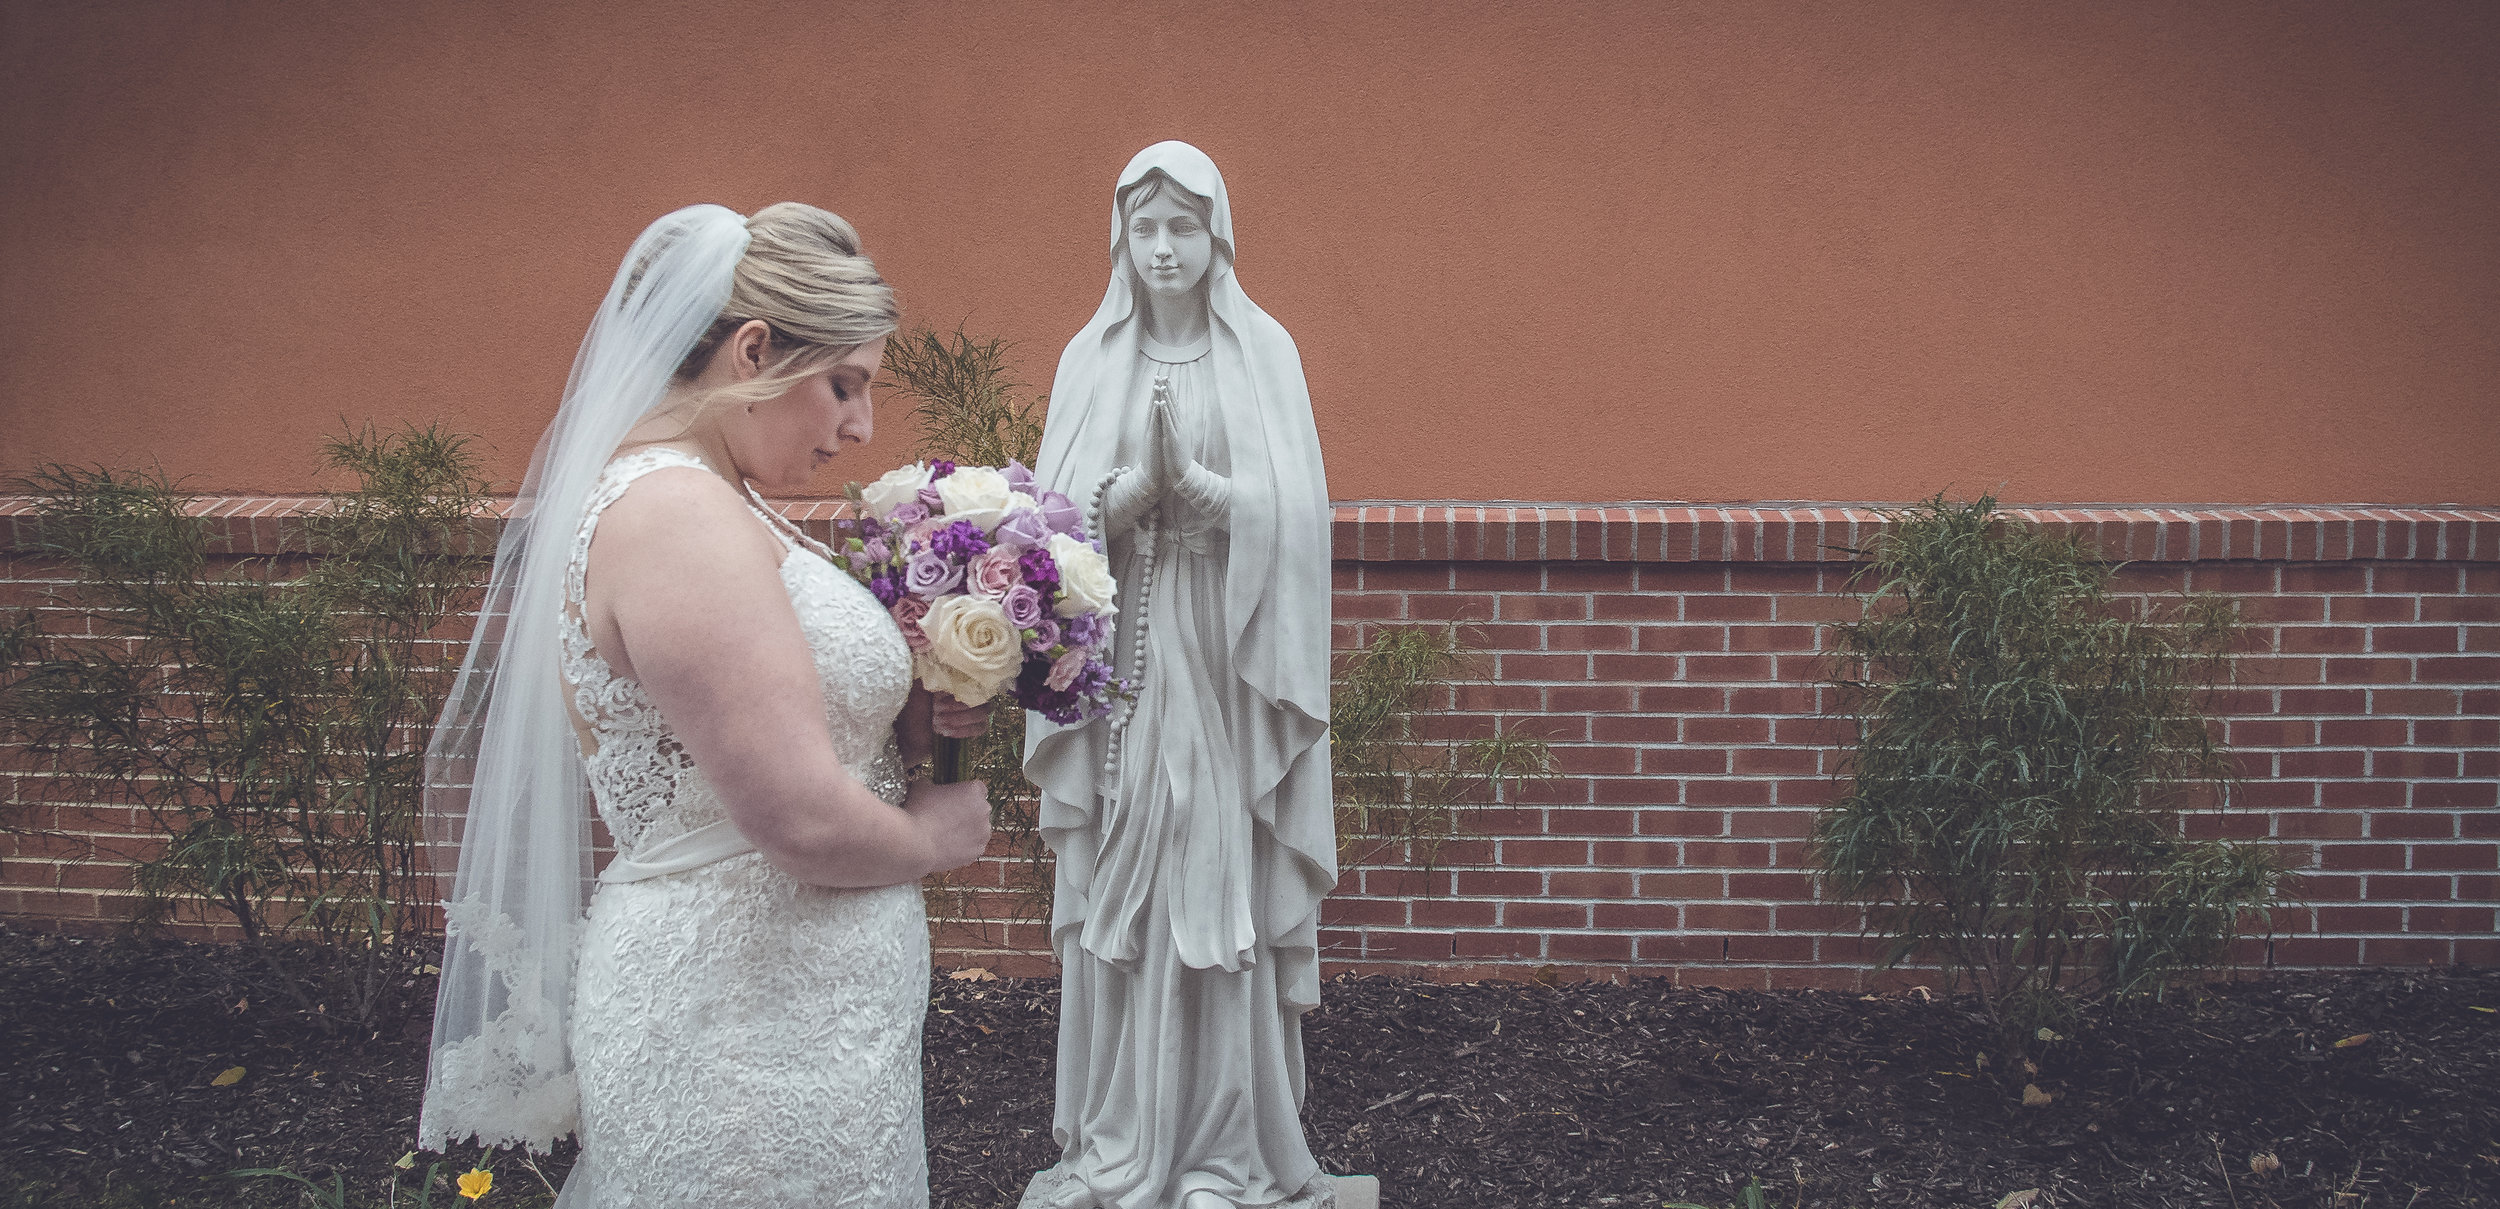 praying for good wedding catholic ceremony.jpg